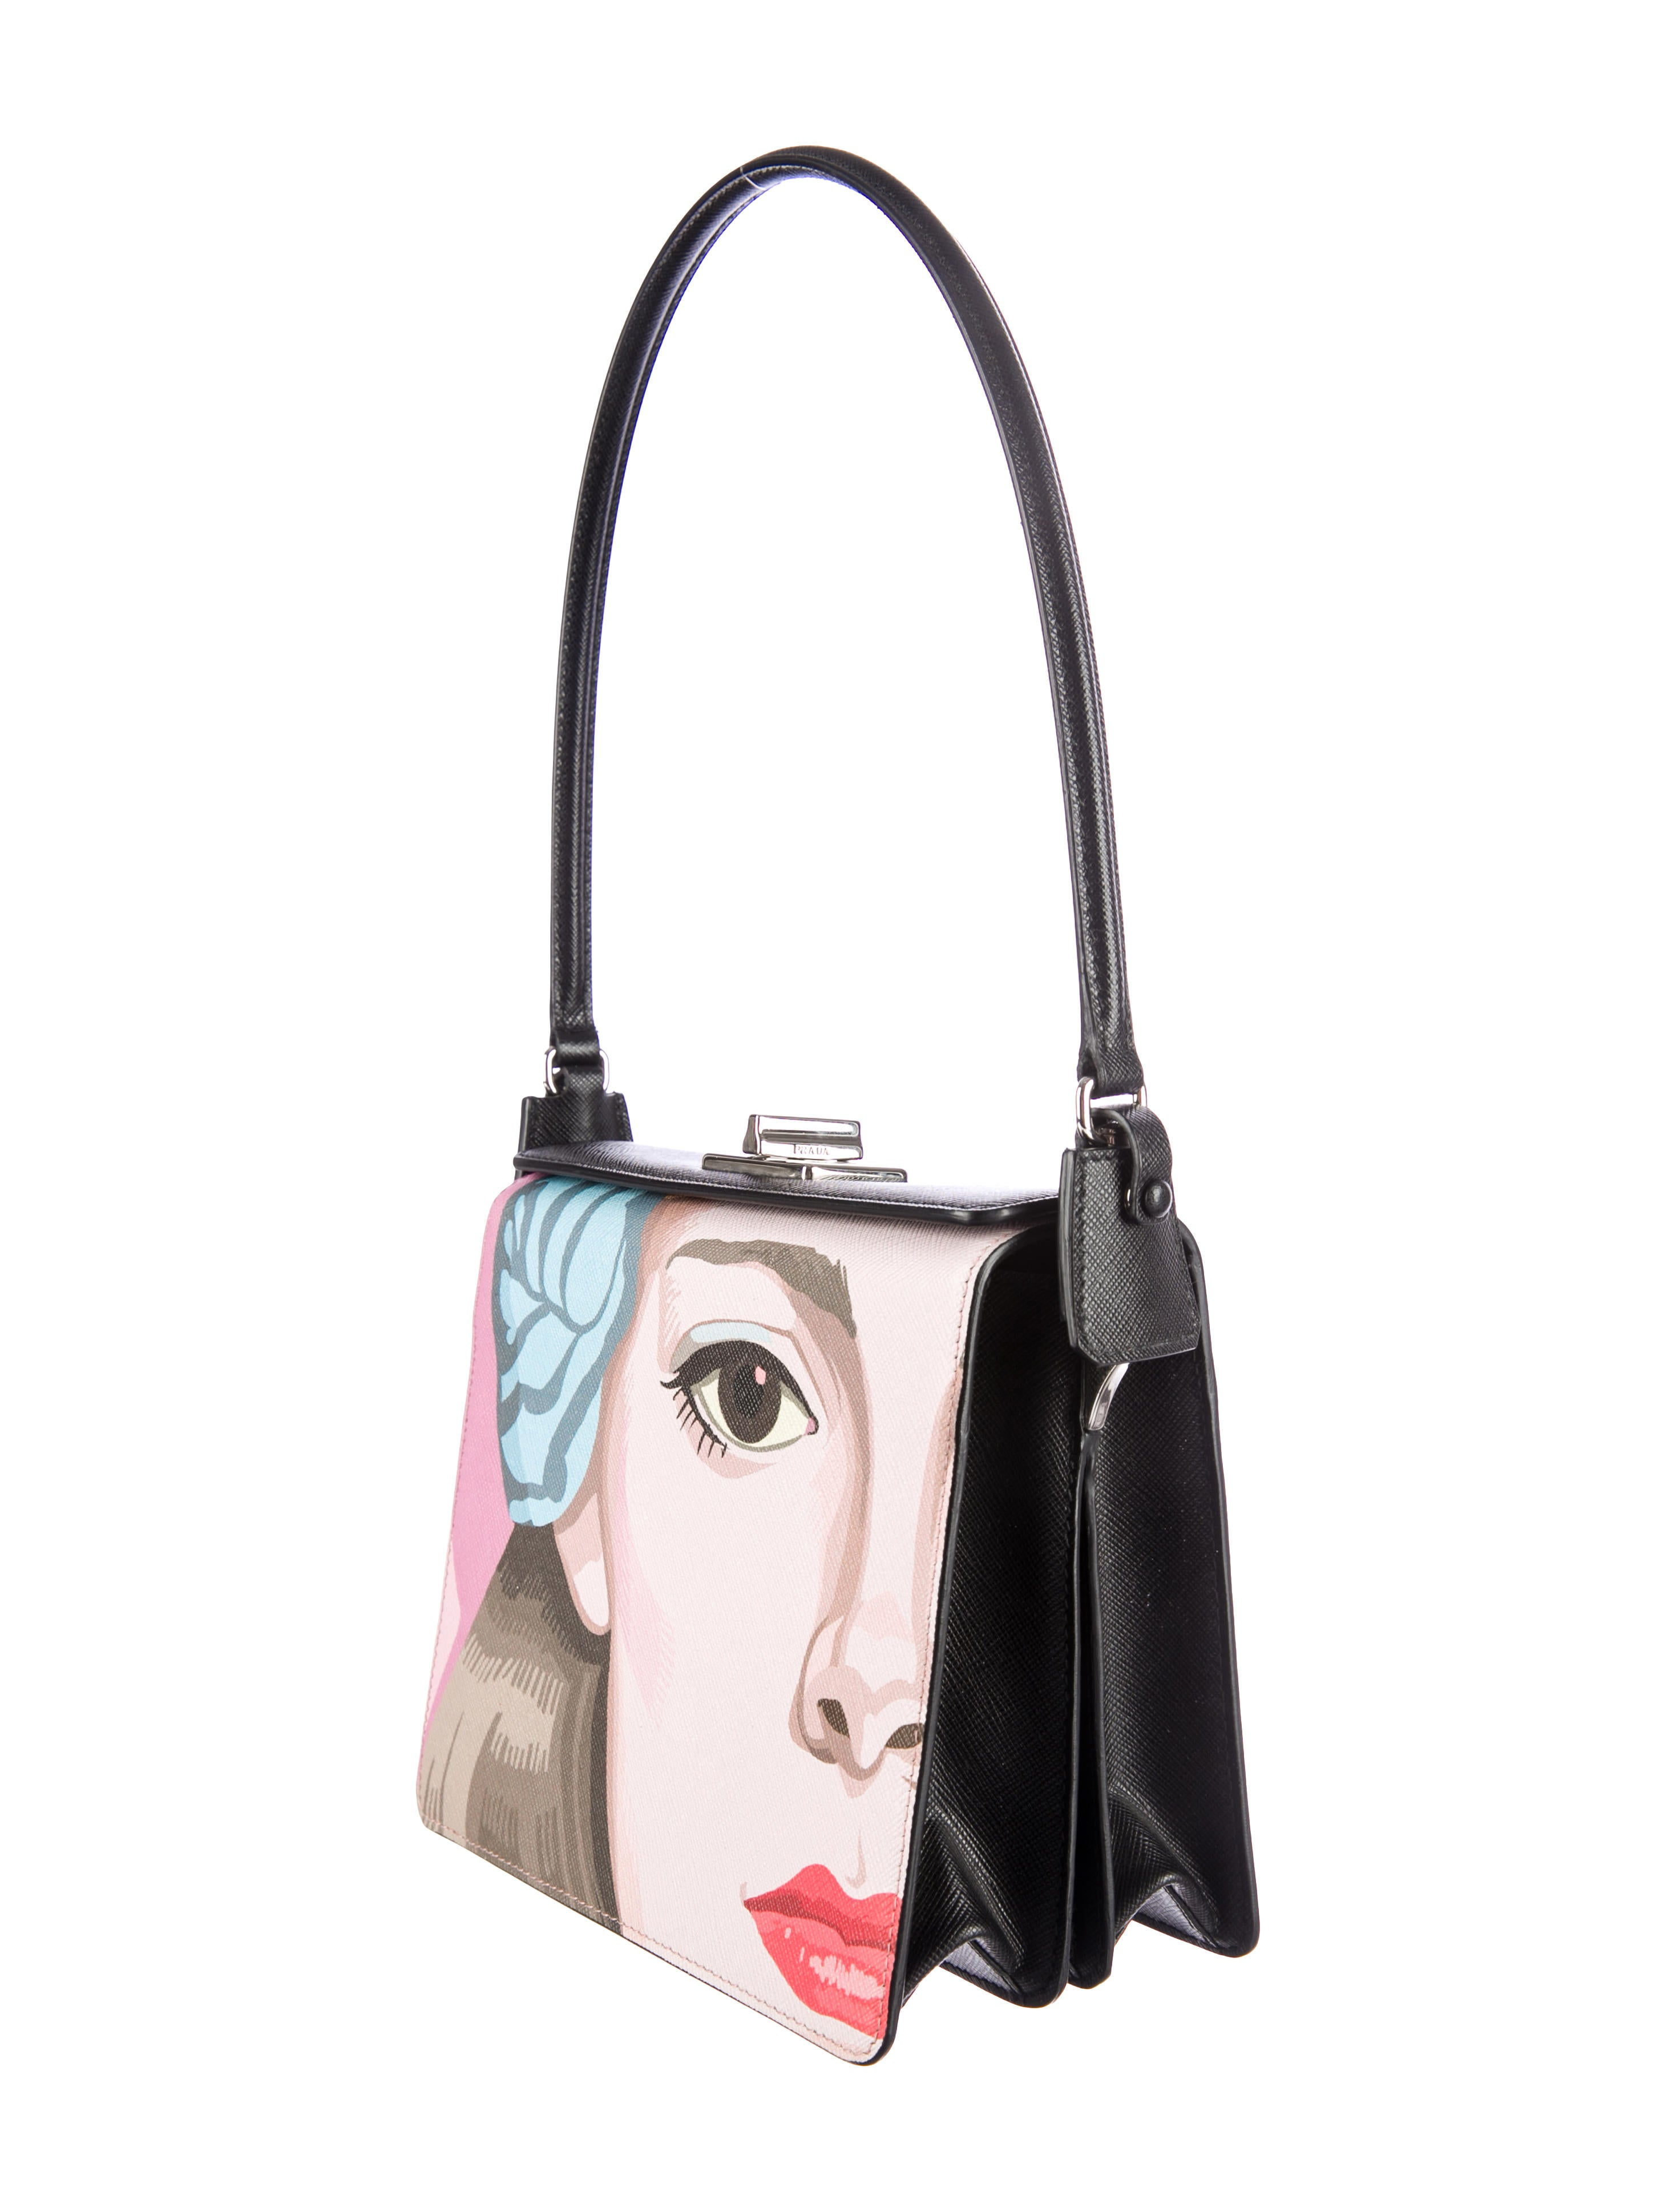 New Prada Women Saffiano Leather Tote | All Handbag Fashion